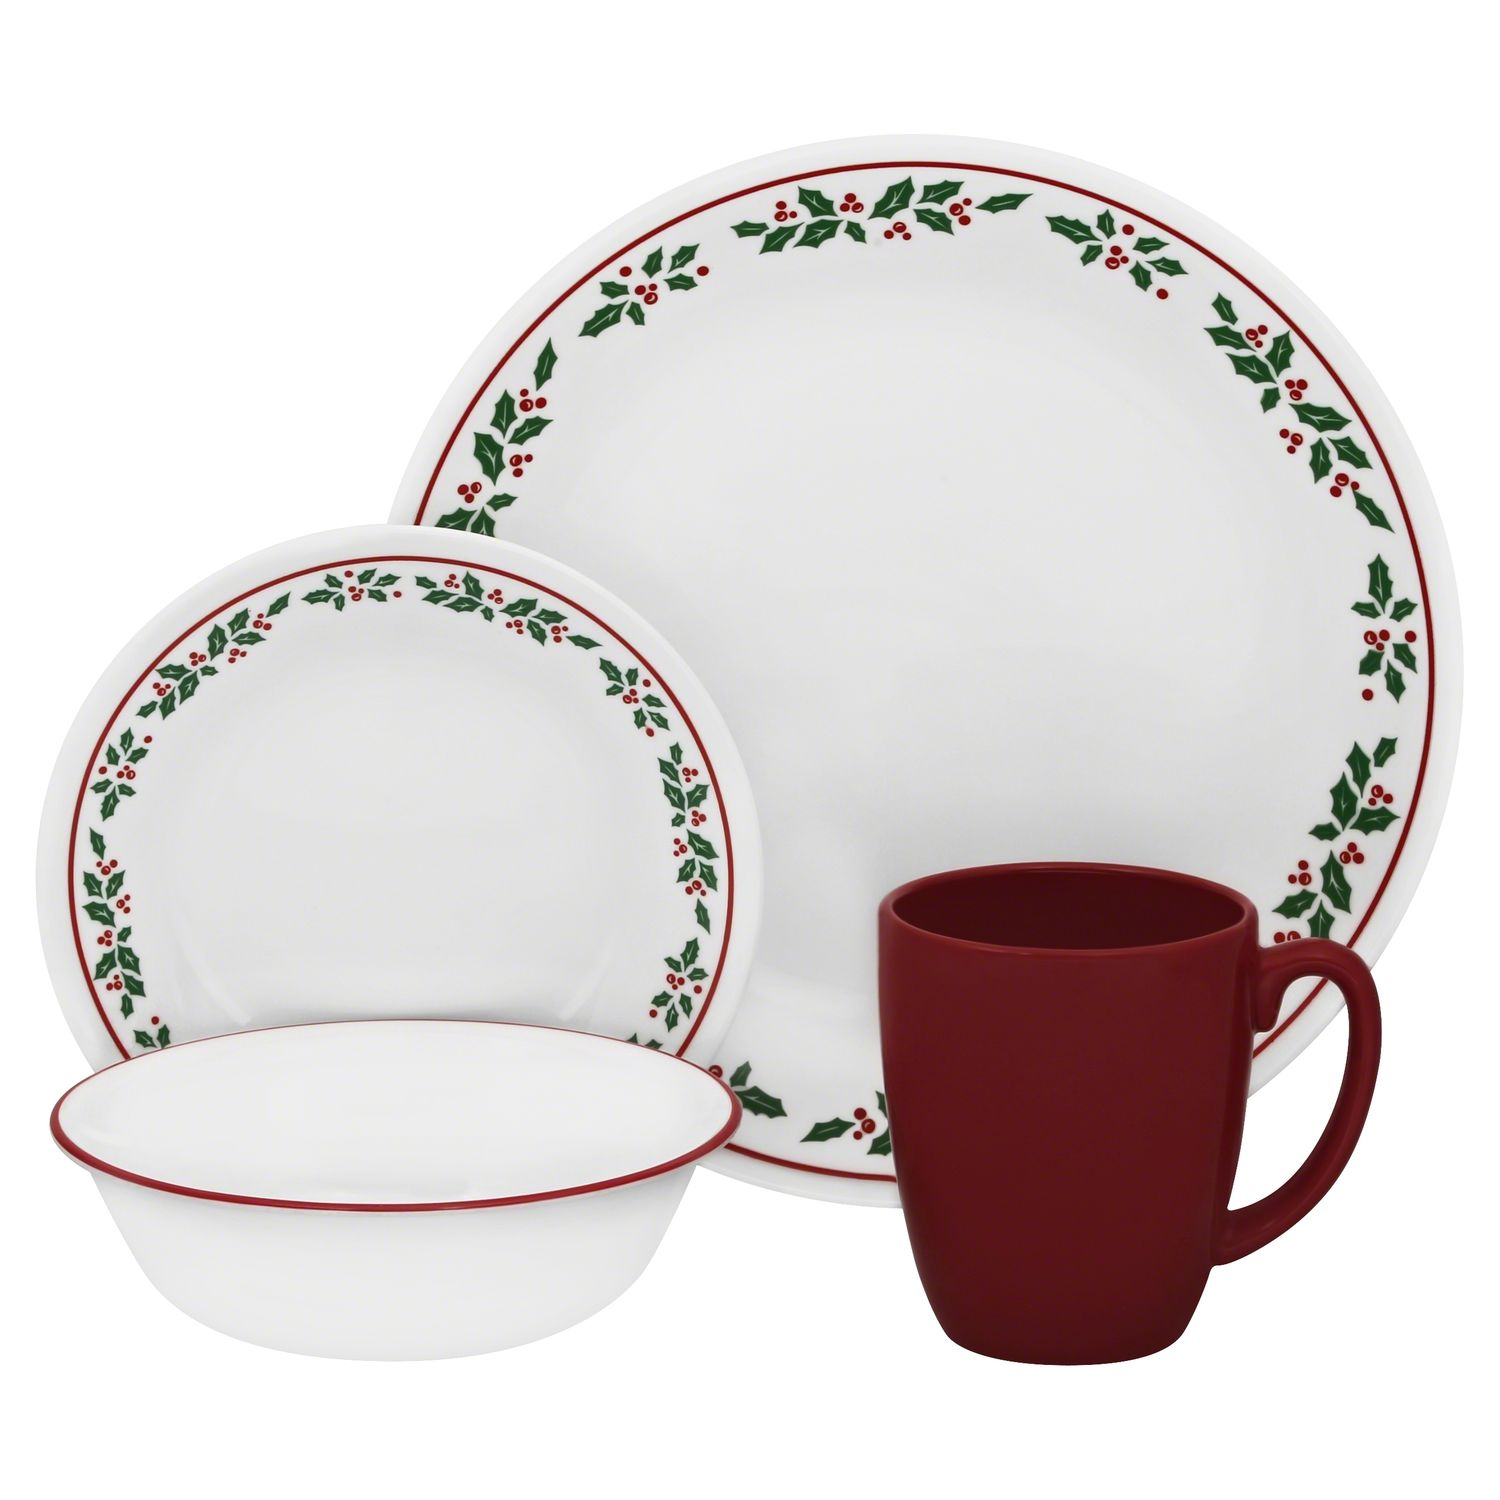 Dazzling Christmas Dinnerware For Christmas Decorating Ideas With Christmas Dinnerware Sets Clearance  sc 1 st  Straydogrecordingco.com & Kitchen \u0026 Dining Sets: Dazzling Christmas Dinnerware For Christmas ...